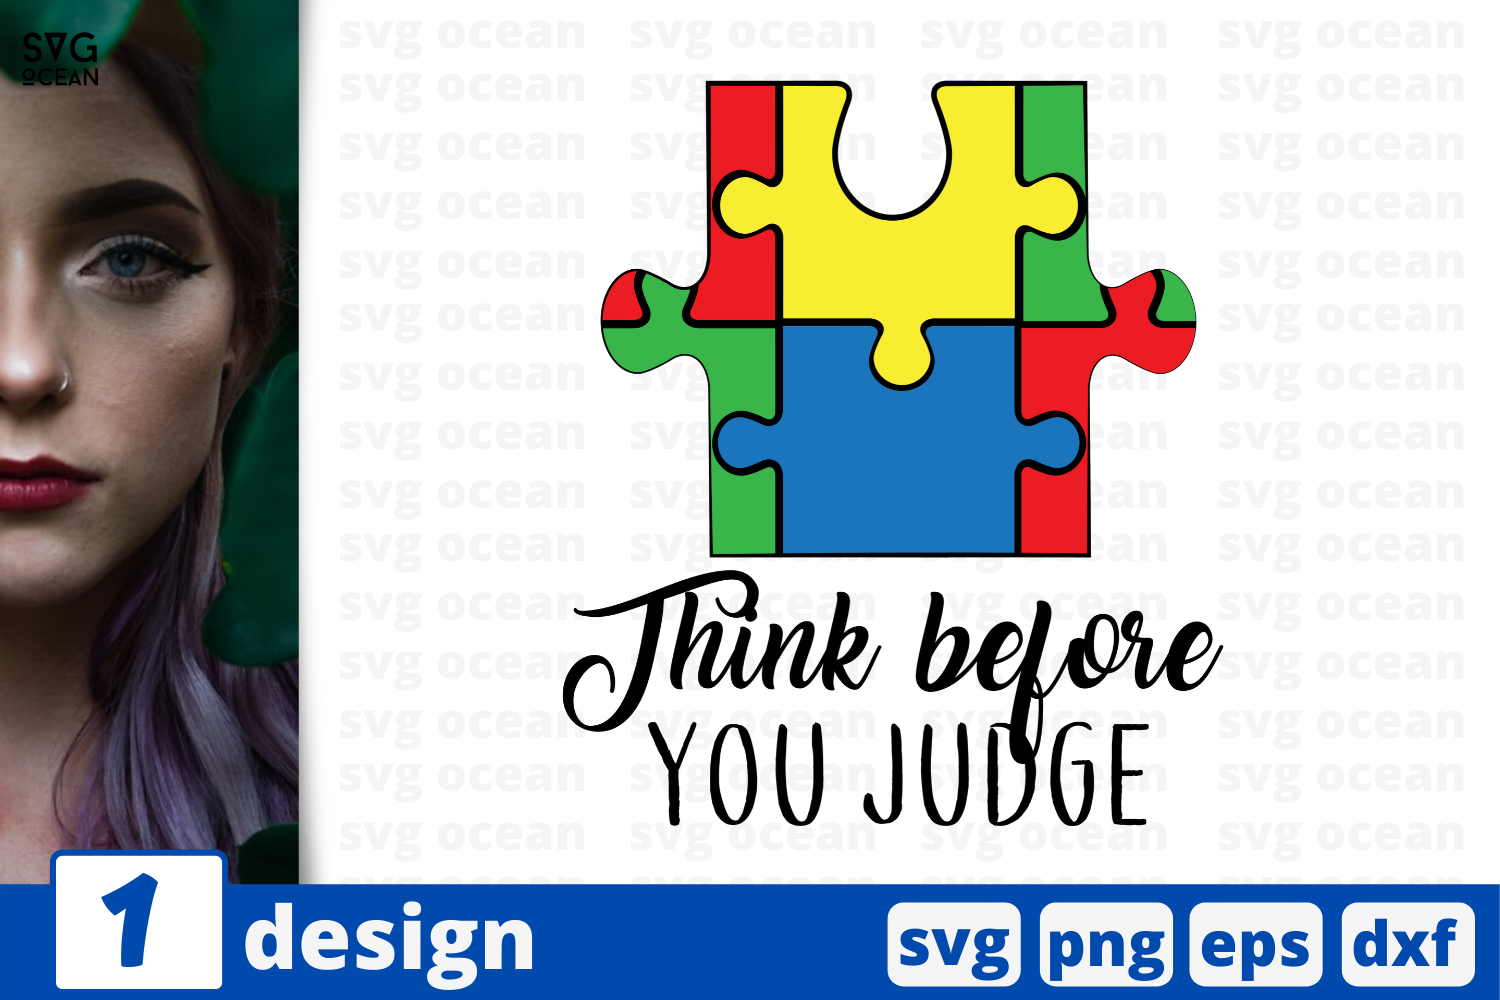 Download Free Think Before You Judge Graphic By Svgocean Creative Fabrica for Cricut Explore, Silhouette and other cutting machines.